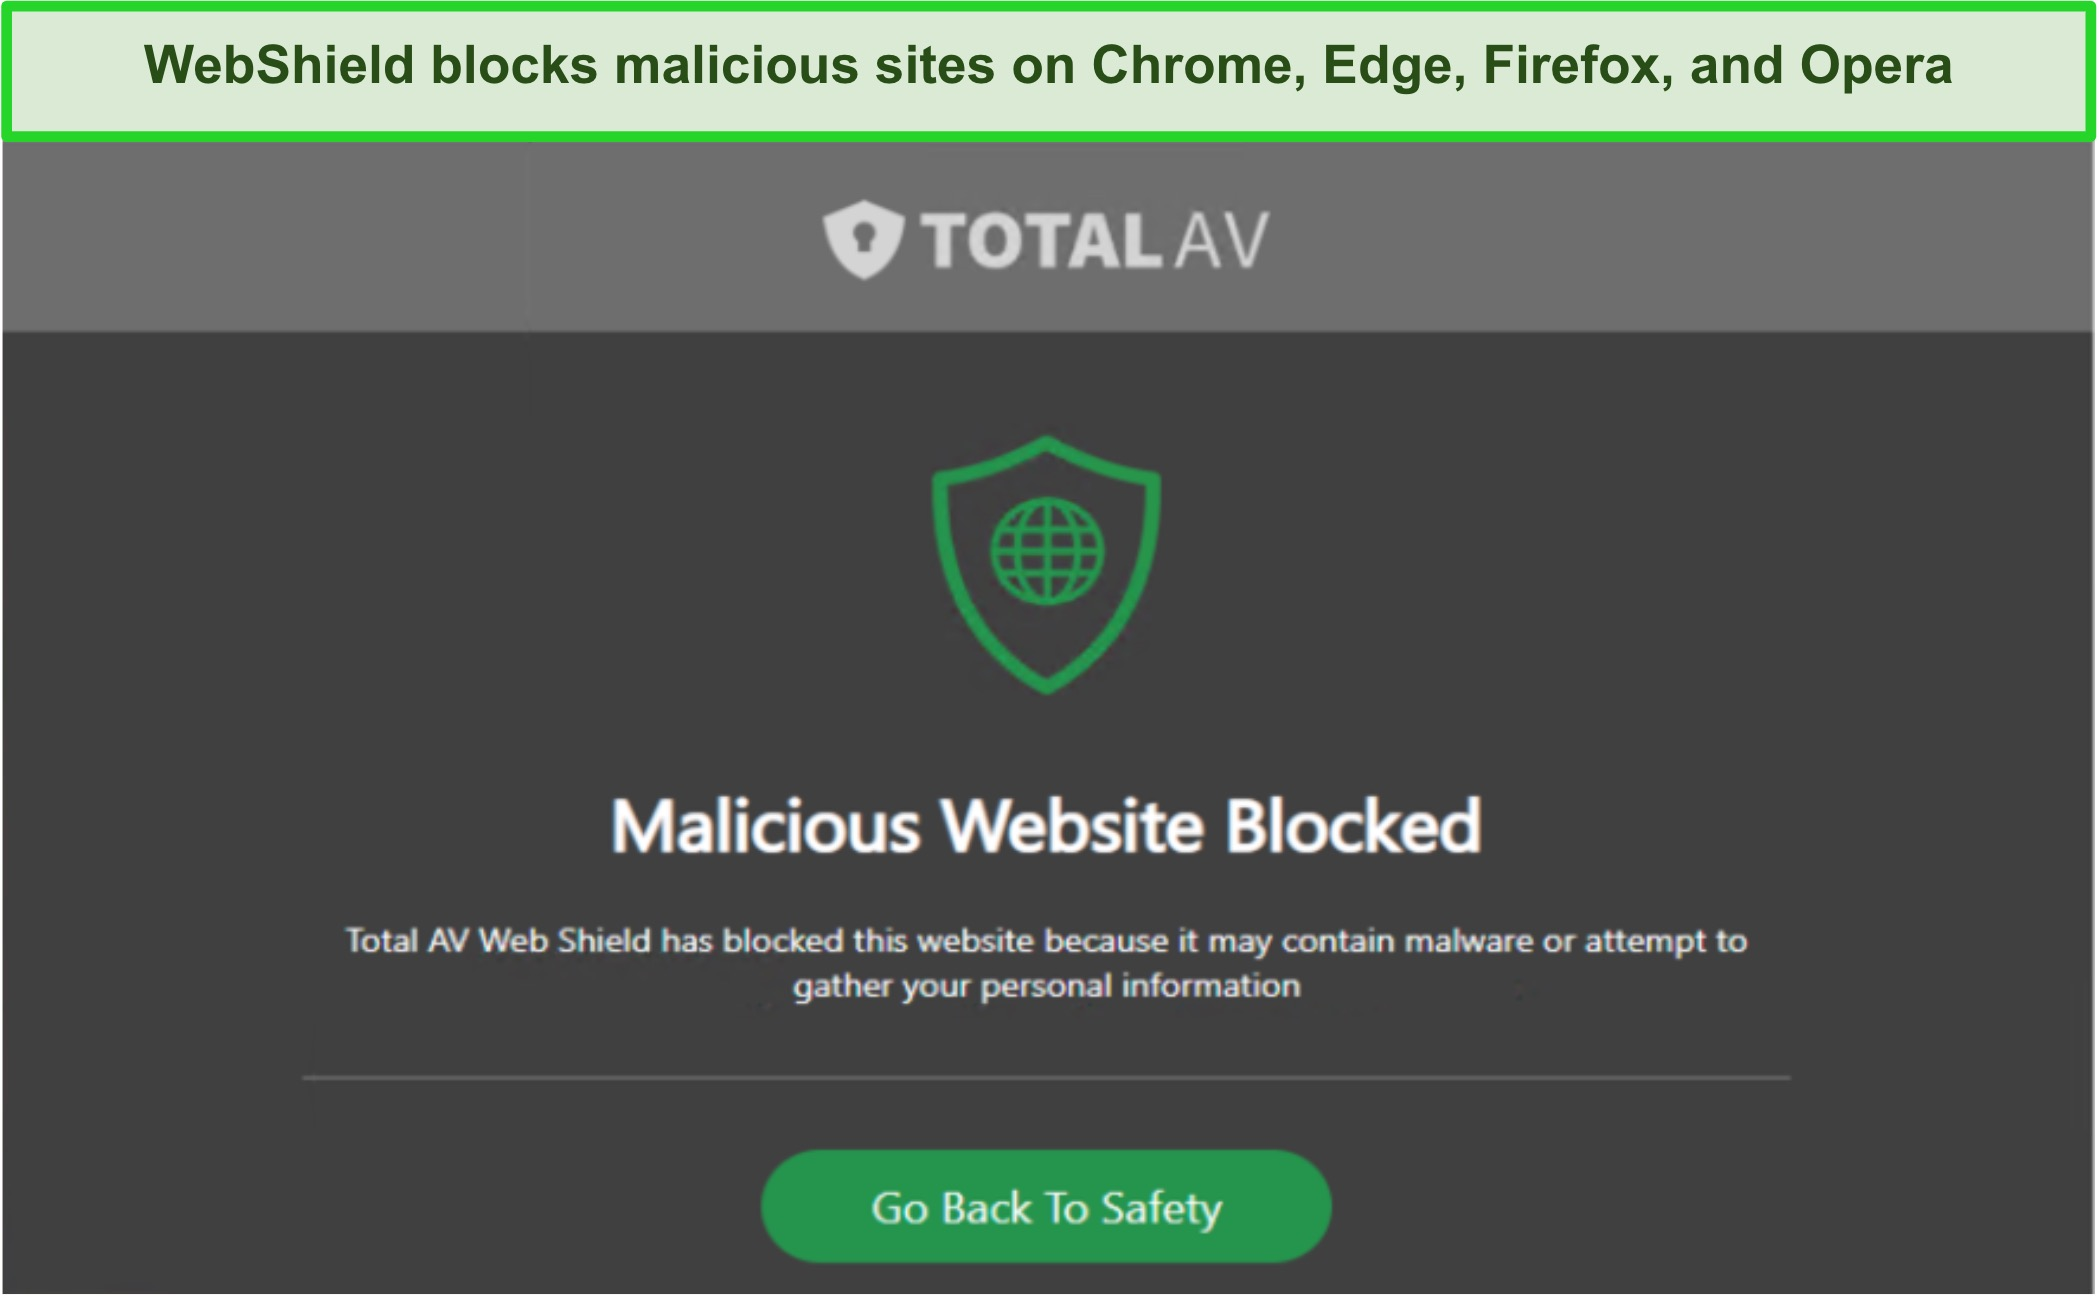 Screenshot of TotalAV's WebShield blocking access to a malicious site